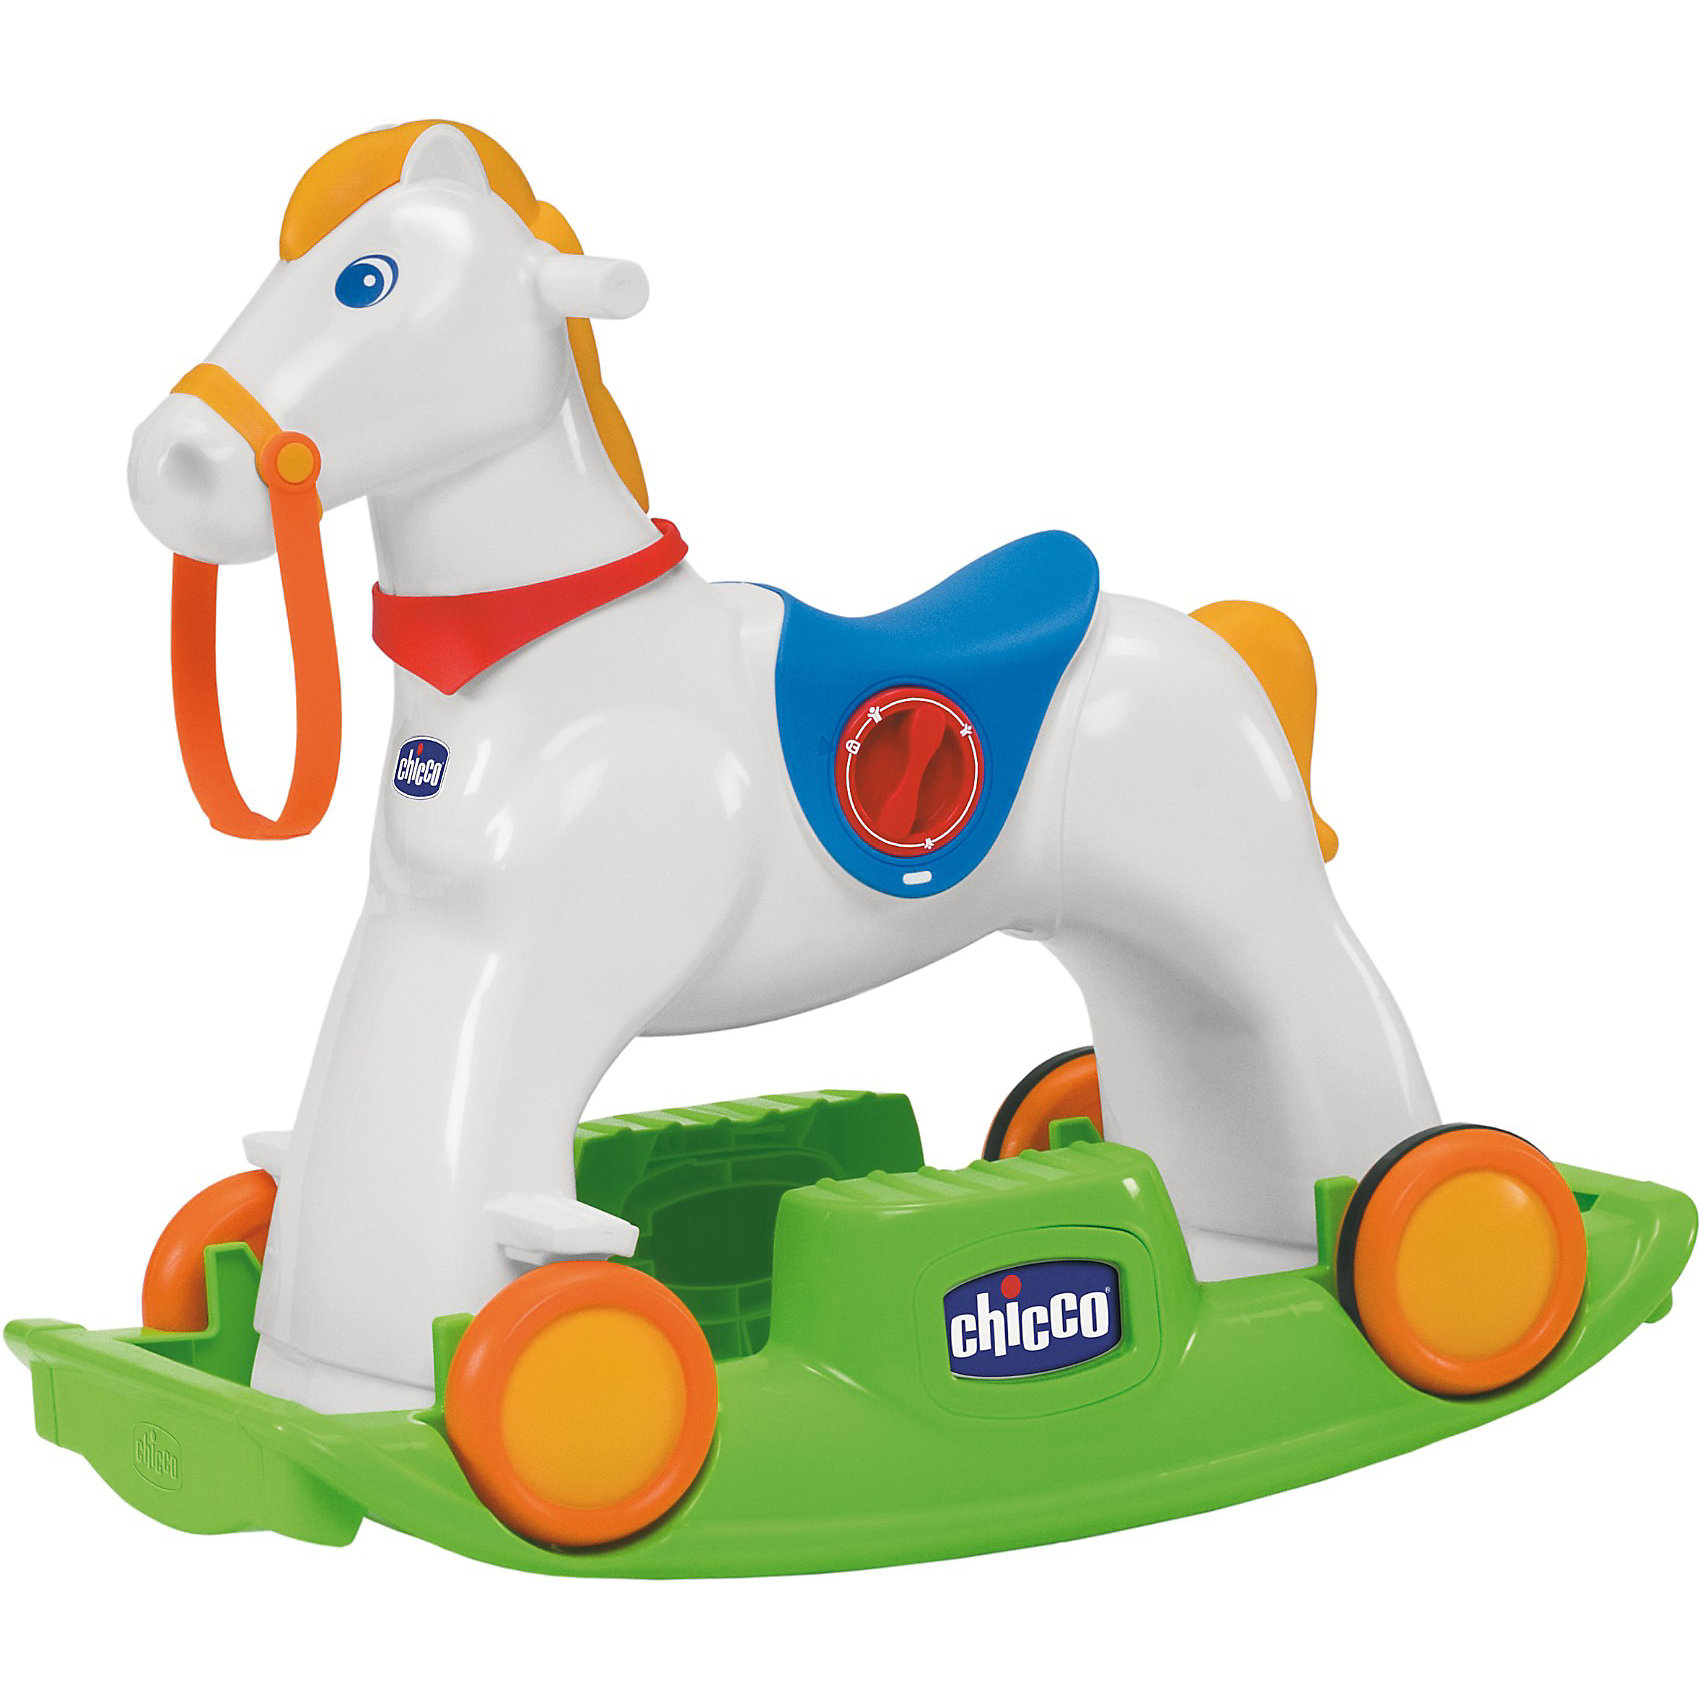 ����������� ������� ������� Rodeo, Chicco����������� ������� ������� Rodeo �� Chicco (����) - ����������� �������-�������, ������� �� ������� ����������� ������ ������. ����������� ���� ������� - ��� ����� ������� �������. � ������� ������� ���������� ������� ���������, ��� ��������� ������������ �� ��� �������. ��������� ����� ����� � ����� ������� ������������ � ������� �� ���������, �� ������� ����� �������������, ������������ �������. � ������� ������� ����� � �������, ������� ������� ��� ����� �� ���������� ���������.<br><br>��� ����� �������� ������������� ������� ����� - ���� ������� ��������� � �����, ������� ����� ����������� ��������� ������ � ������� ��������� �������������. ������� Easy Ride ��������� ������������ ������� ����������� ��� ������ �� ����� ������ � ����������� �� ���� � ���� �������. ������������ �������� �������� ����������. ������� �������� ��������� ���������: ������������� ����� ������ � ����� �����. ����������� ���������� ��������: 25 ��. <br><br>�������������� ����������:<br><br>- ��������: �������, ��������.<br>- ��������� ���������: 3 � �� 1,5V (��� � ���������). <br>- ������ �������: 61 ��.<br>- ������ ��������: 55 x 45 x 38 ��. <br>- ���: 8,183 ��.<br><br>����������� ������� ������� Rodeo, Chicco (����) ����� ������ � ����� ��������-��������.<br><br>������ ��: 480<br>������� ��: 570<br>������ ��: 415<br>��� �: 8183<br>������� �� �������: 18<br>������� �� �������: 36<br>���: �������<br>�������: �������<br>SKU: 3688348